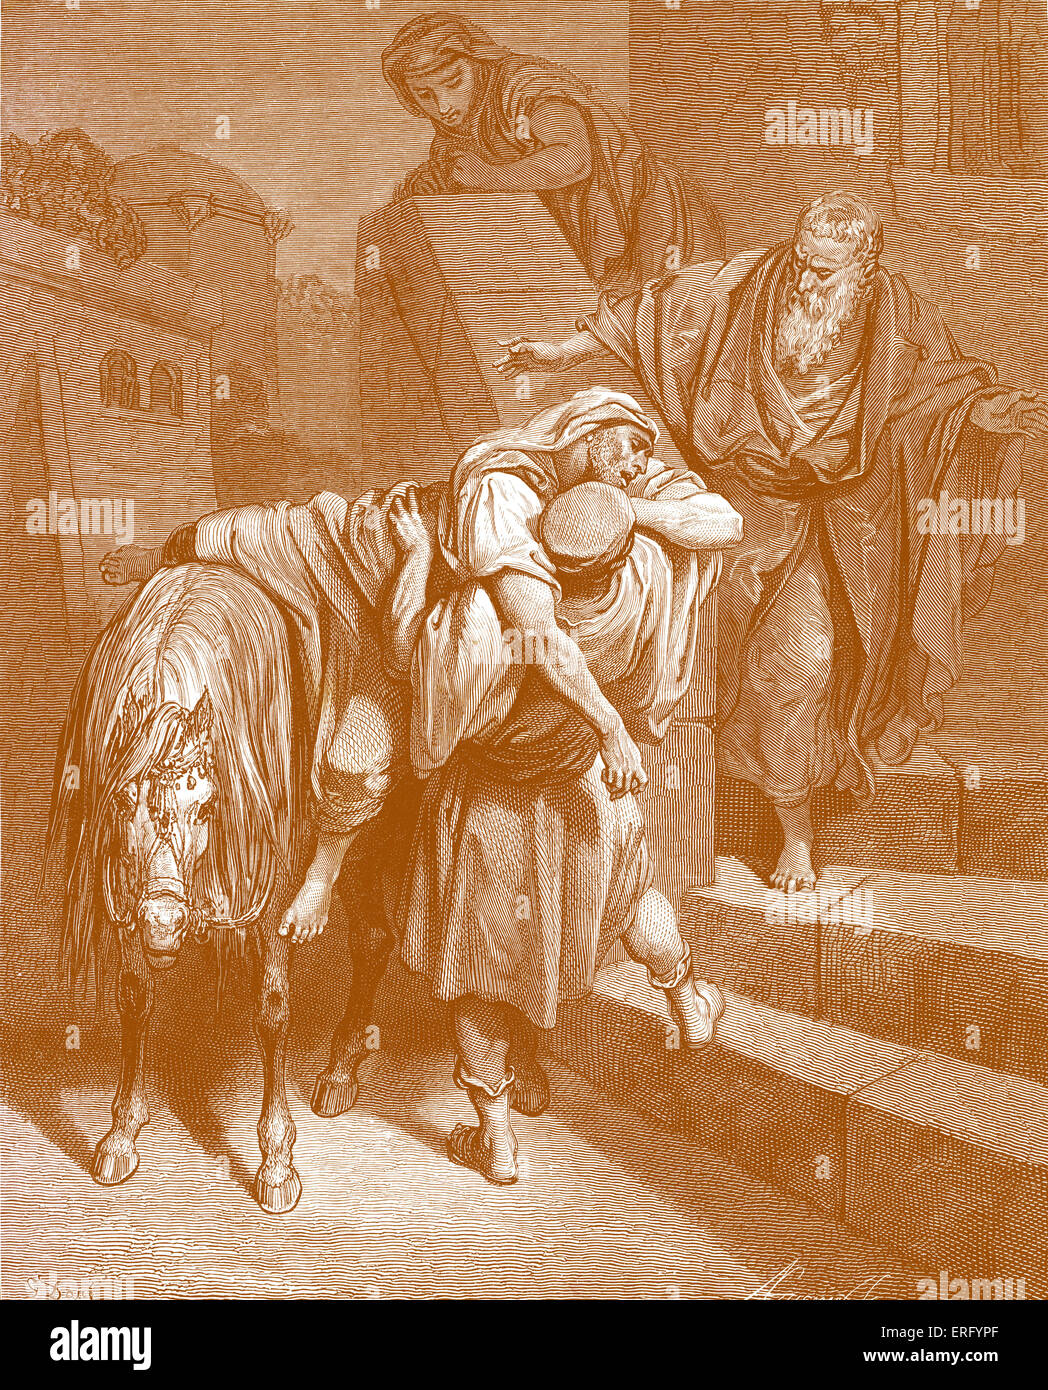 The Good Samaritan arrives at the inn, engraving by Gustave Doré. The Good Samaritan helps  the robbed and - Stock Image